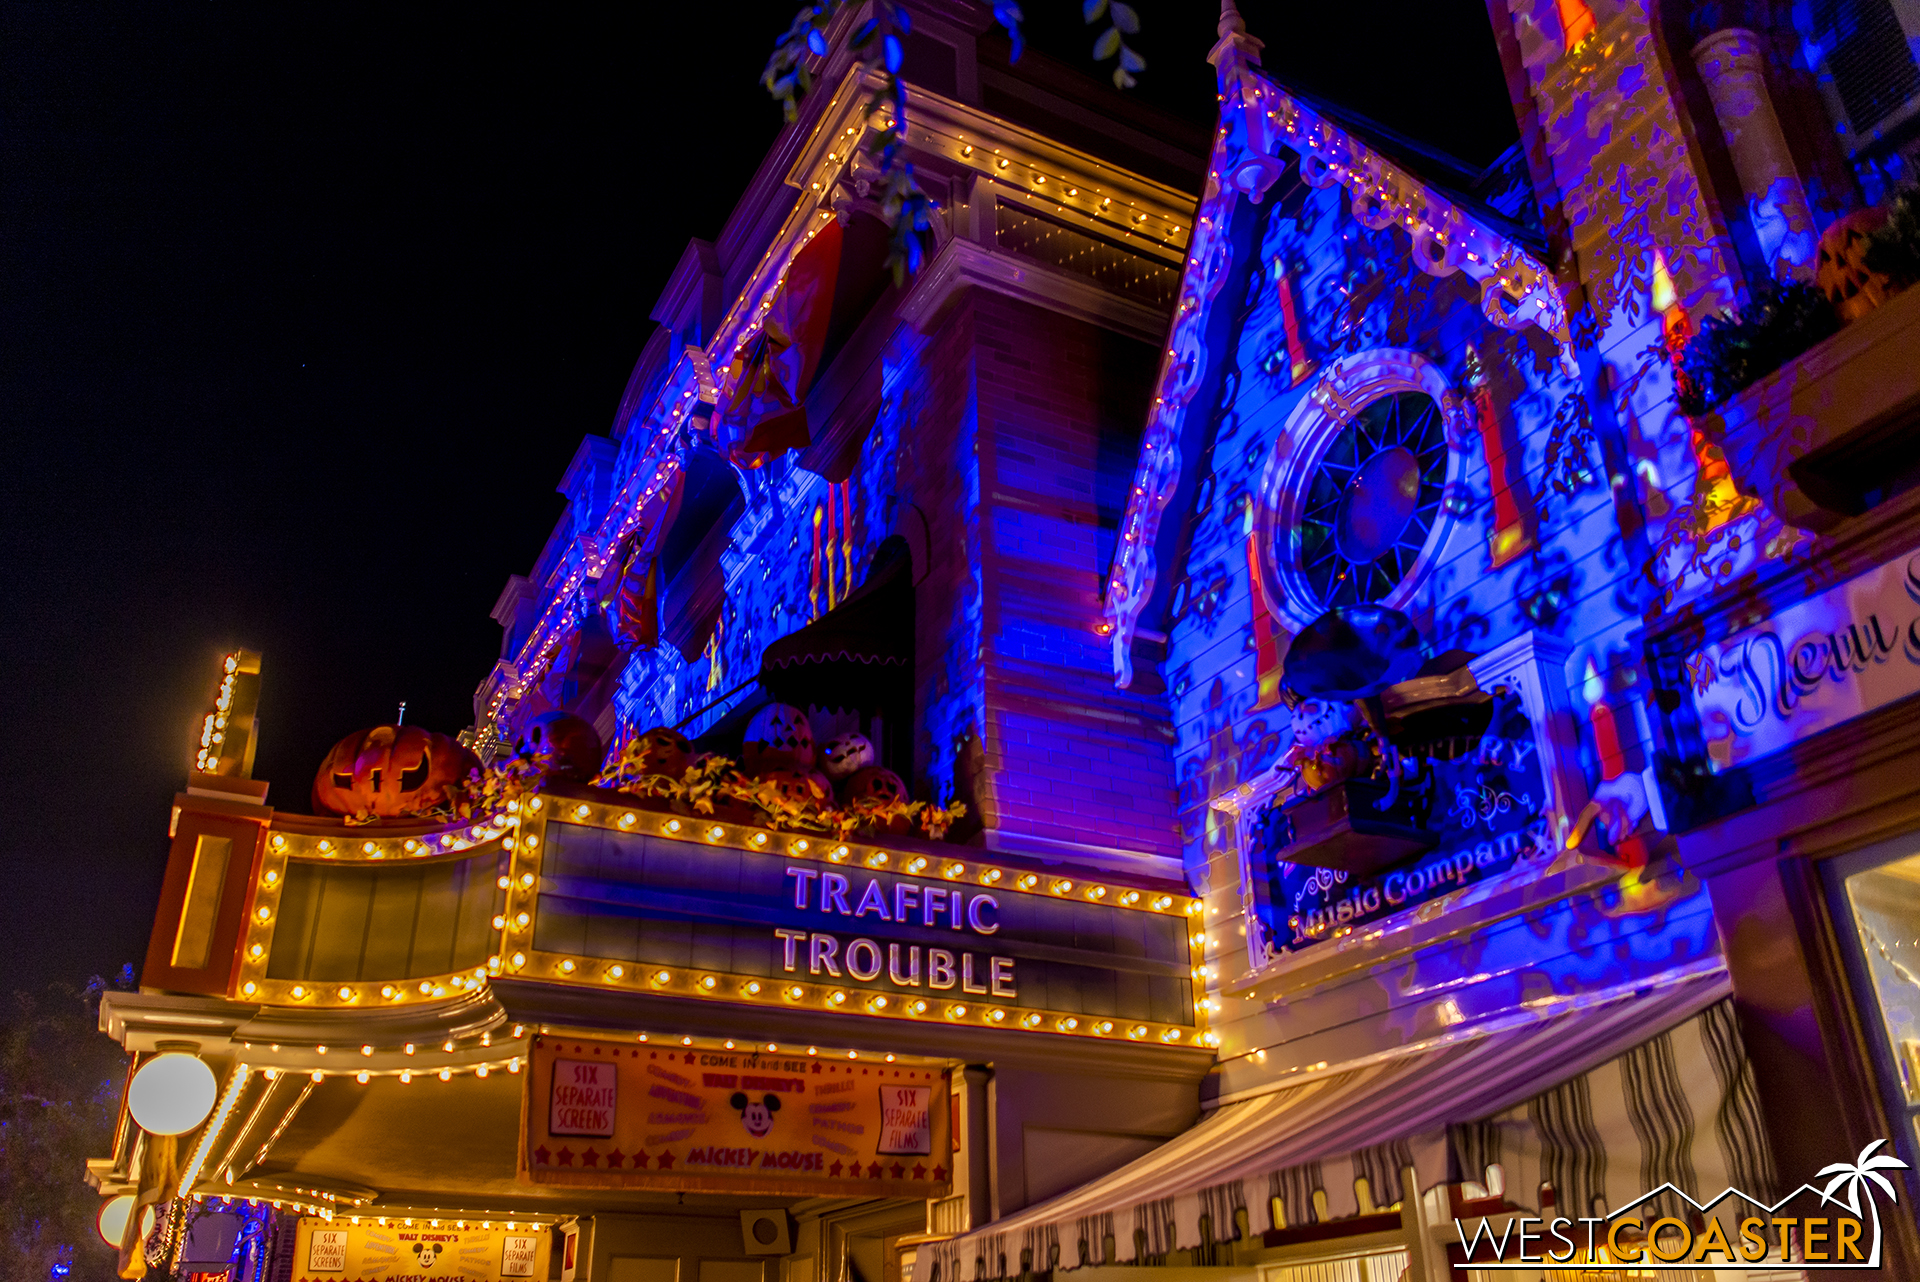 These are the legacy of the Main Street window projections used for the Disneyland Forever fireworks show.